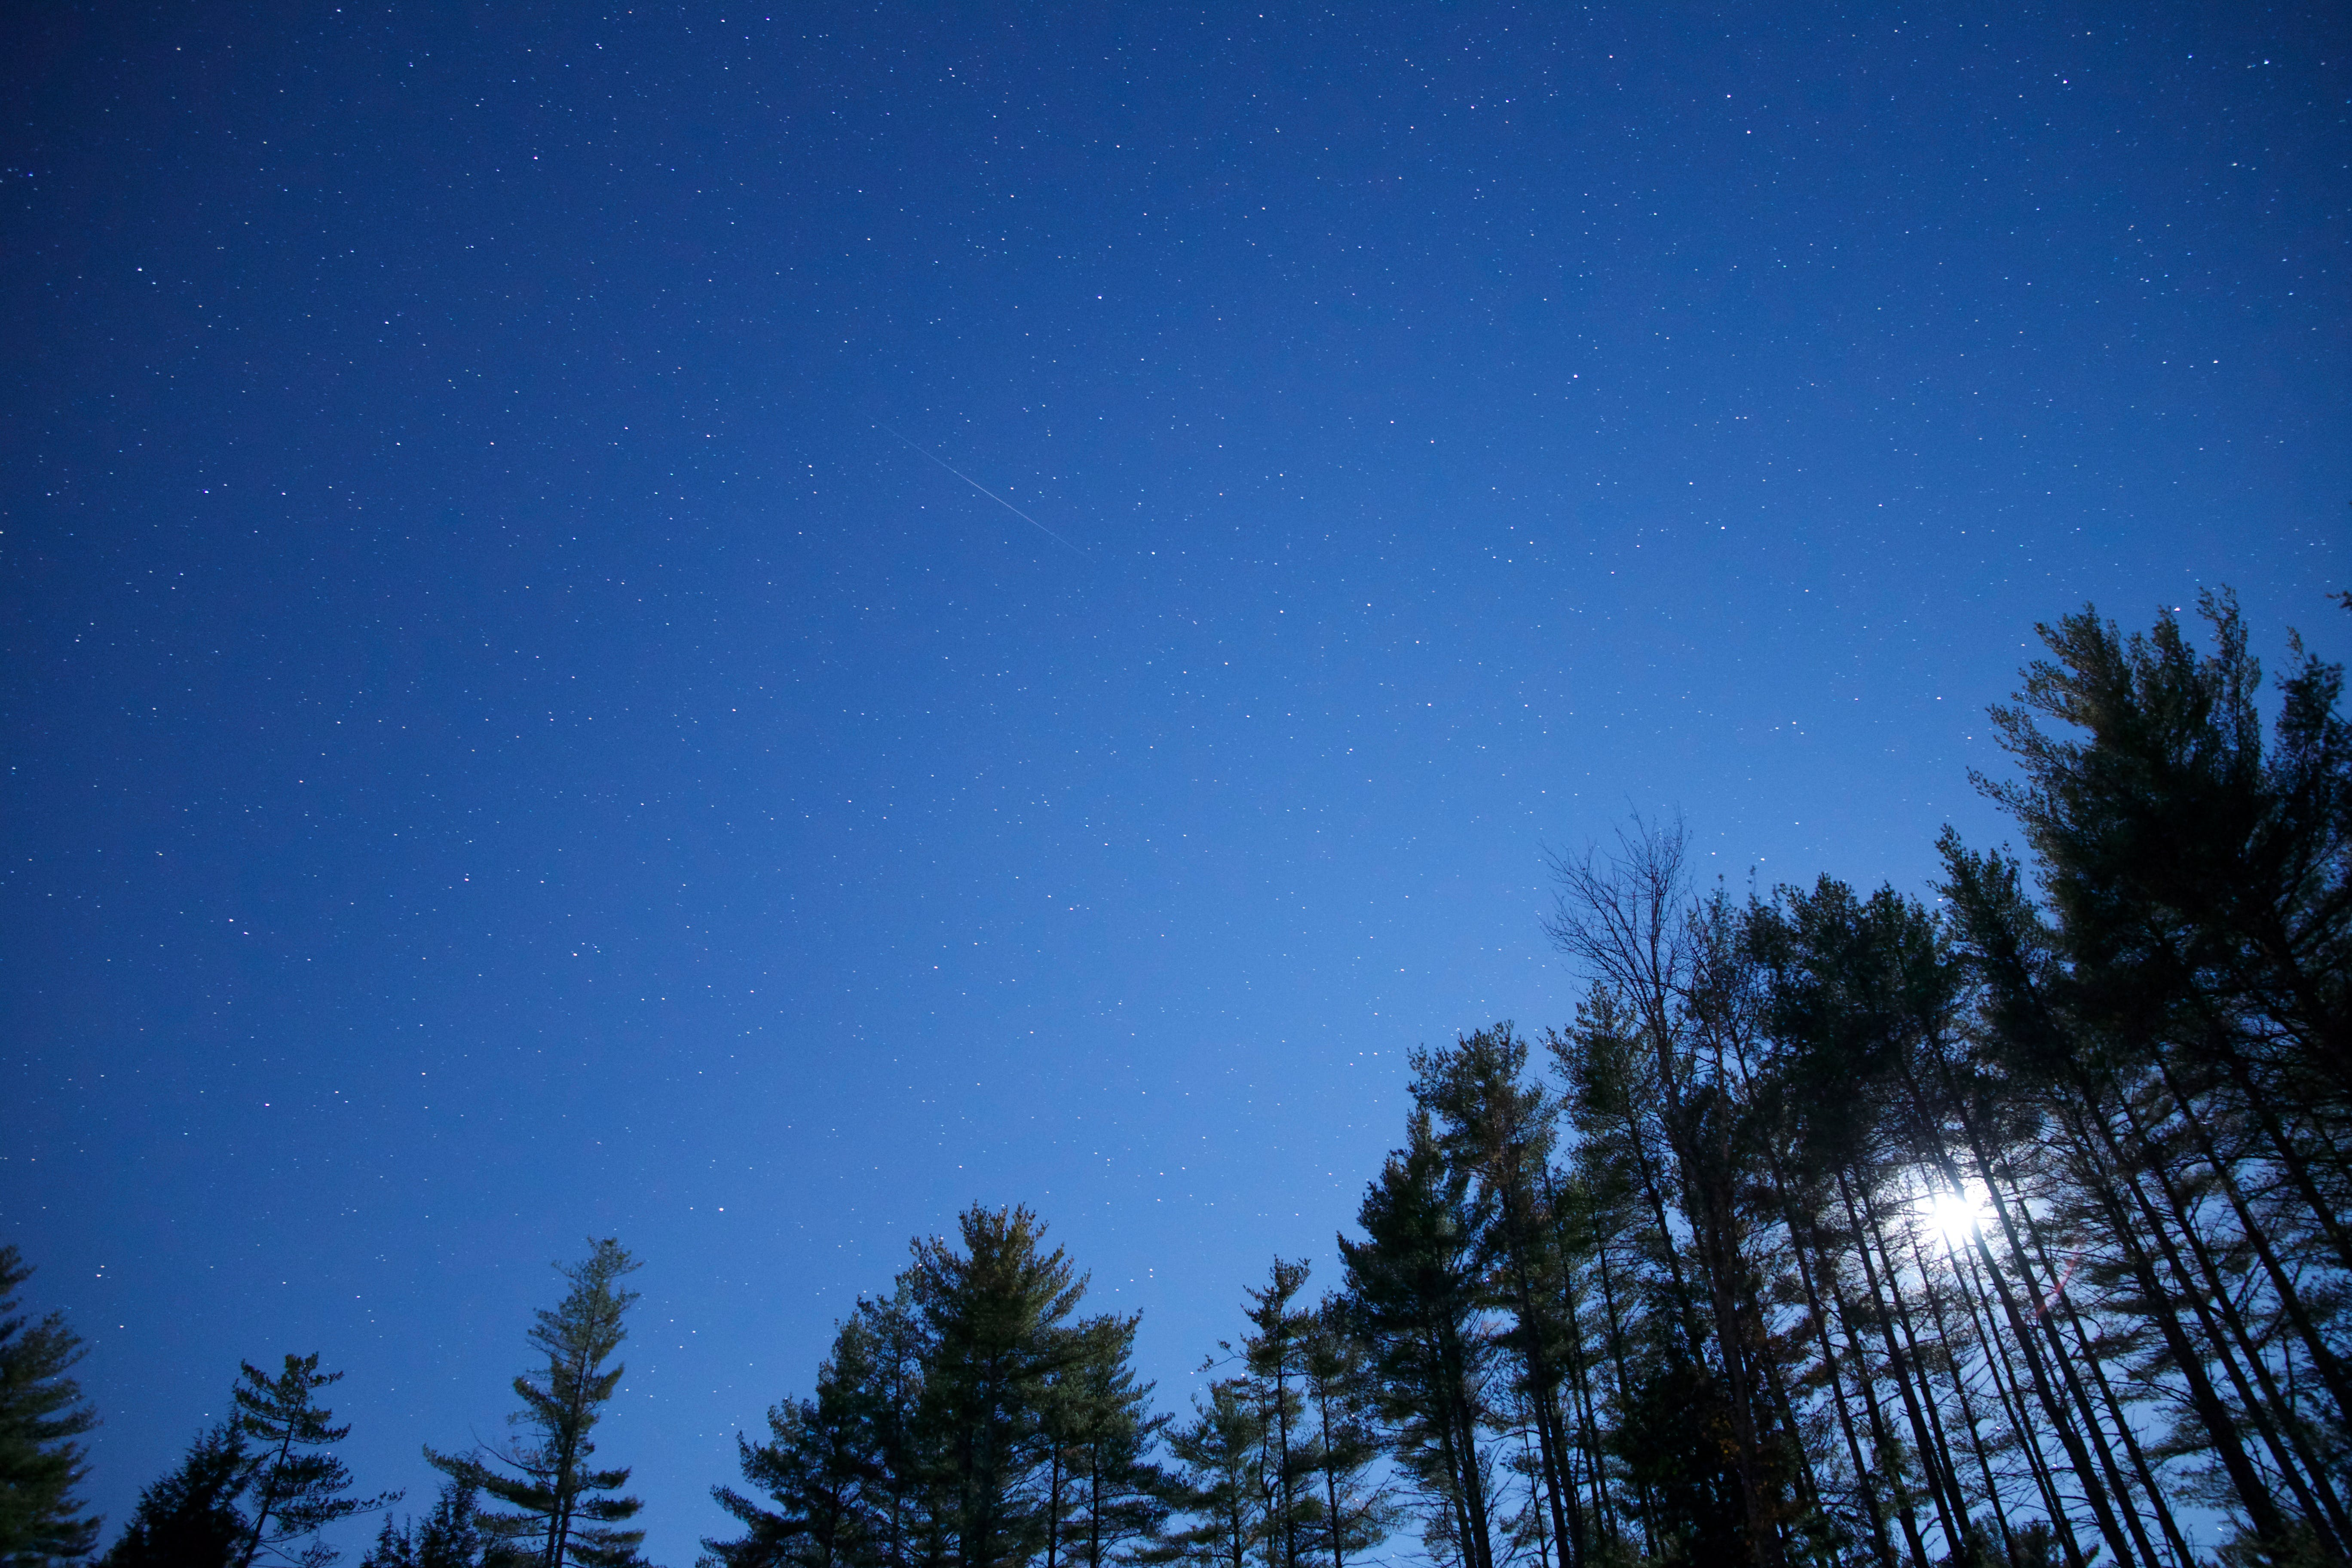 Worm's Eye View of Green Trees Under Blue Clear Night Sky